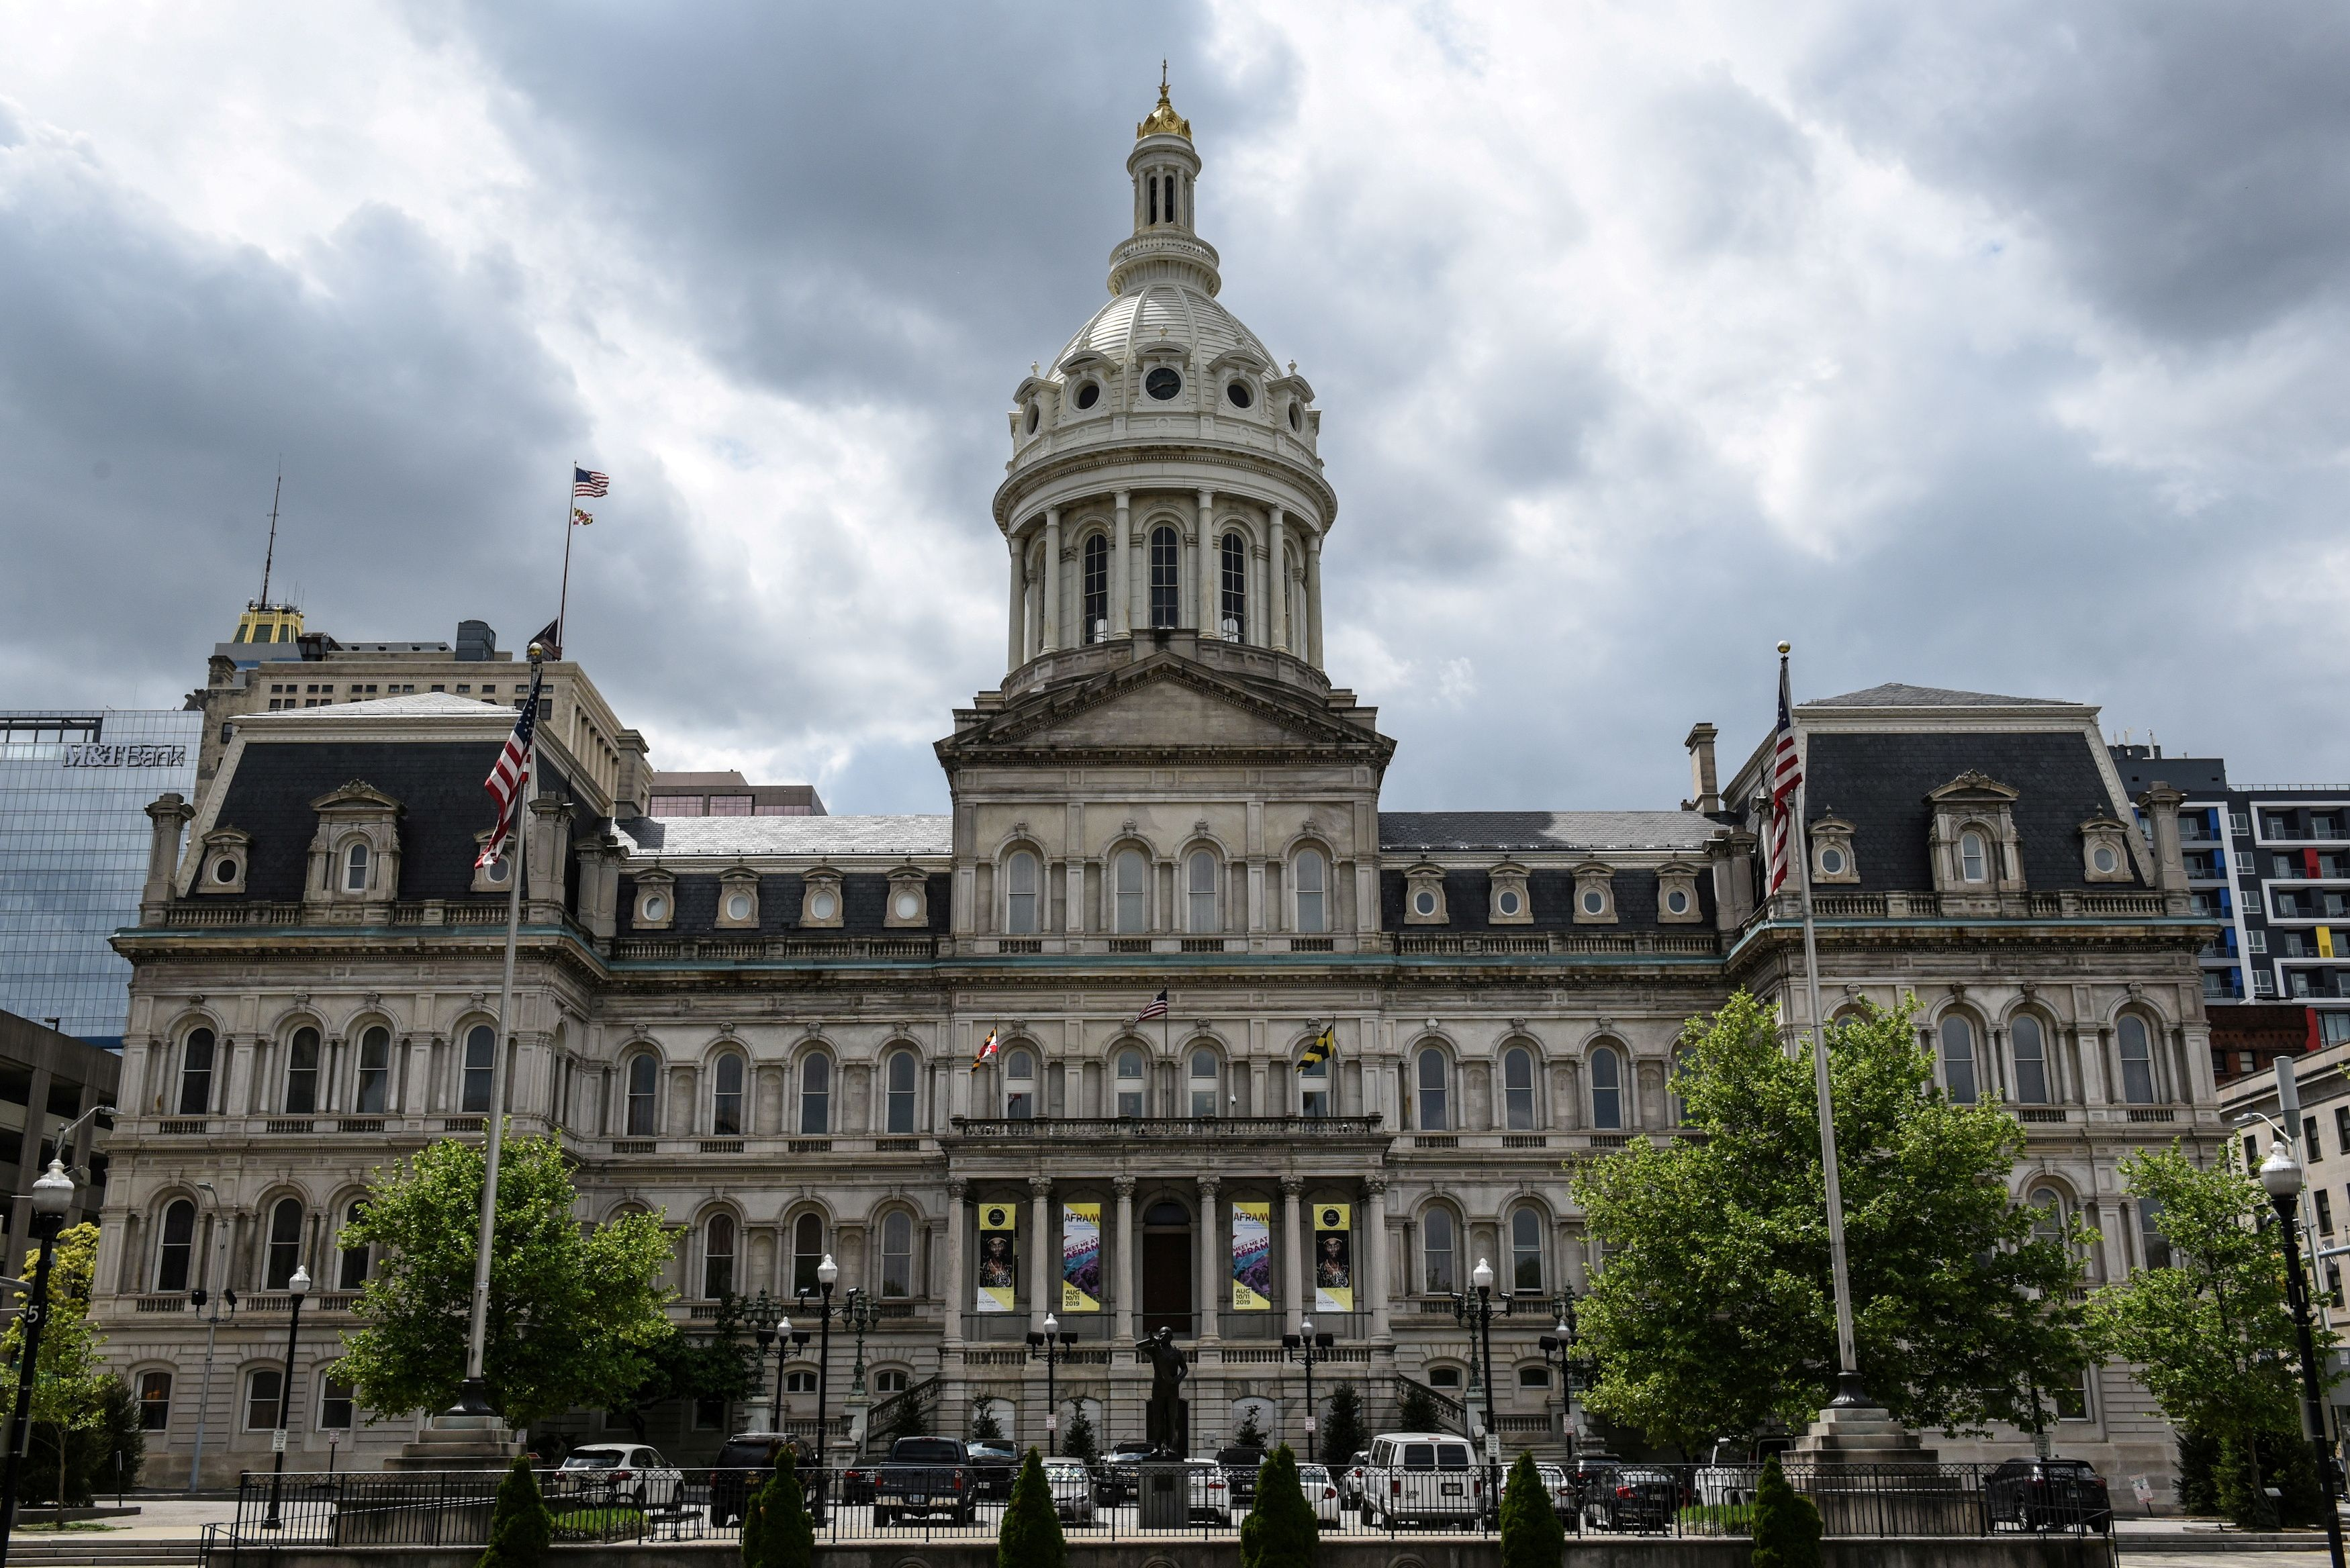 Baltimore City Hall is seen in Baltimore, Maryland, U.S. May 10, 2019. REUTERS/Stephanie Keith